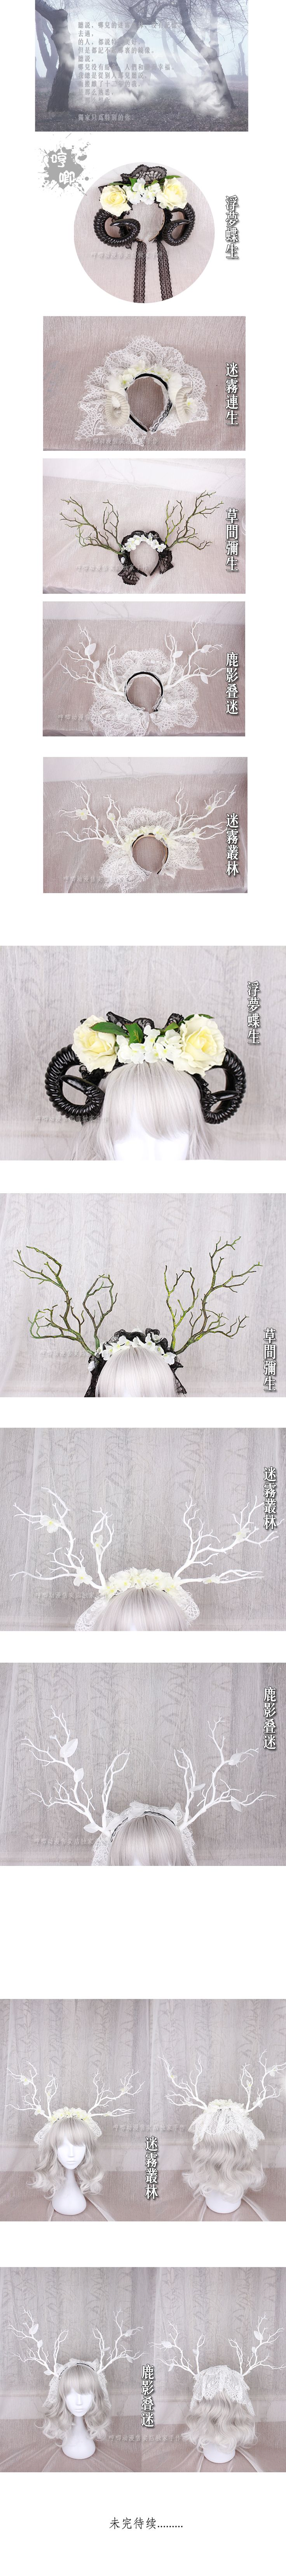 Whines exclusive hand-made fairy forest department elk sheep horn headband headband dark branches wizard series - Taobao global Station